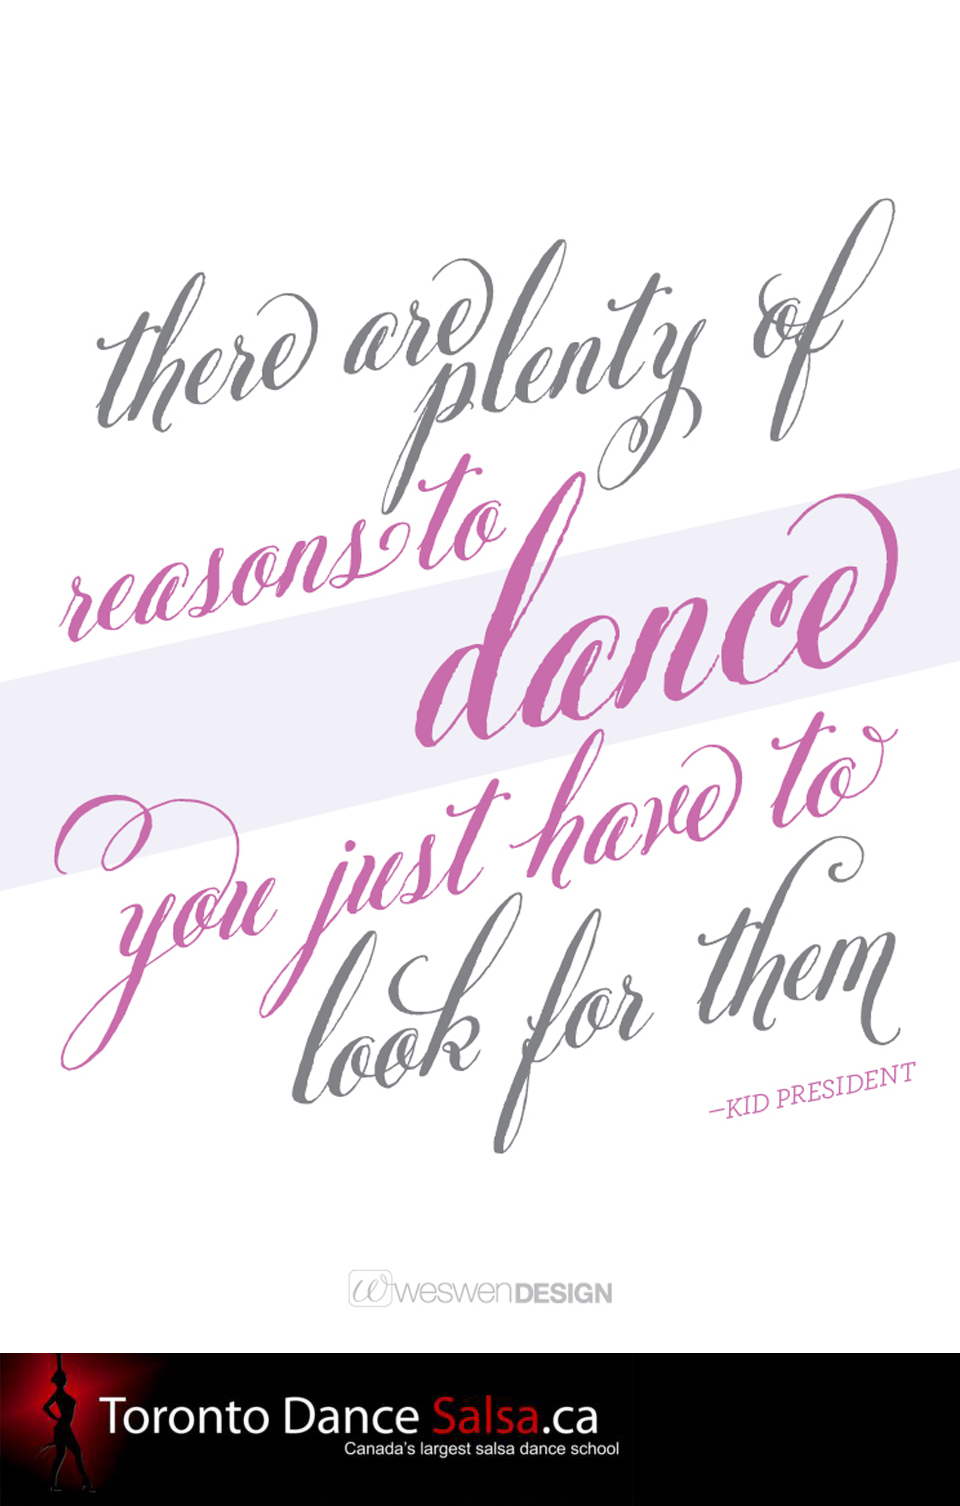 """There are plenty of reason to dance you just have to look for them."" – Kid President"